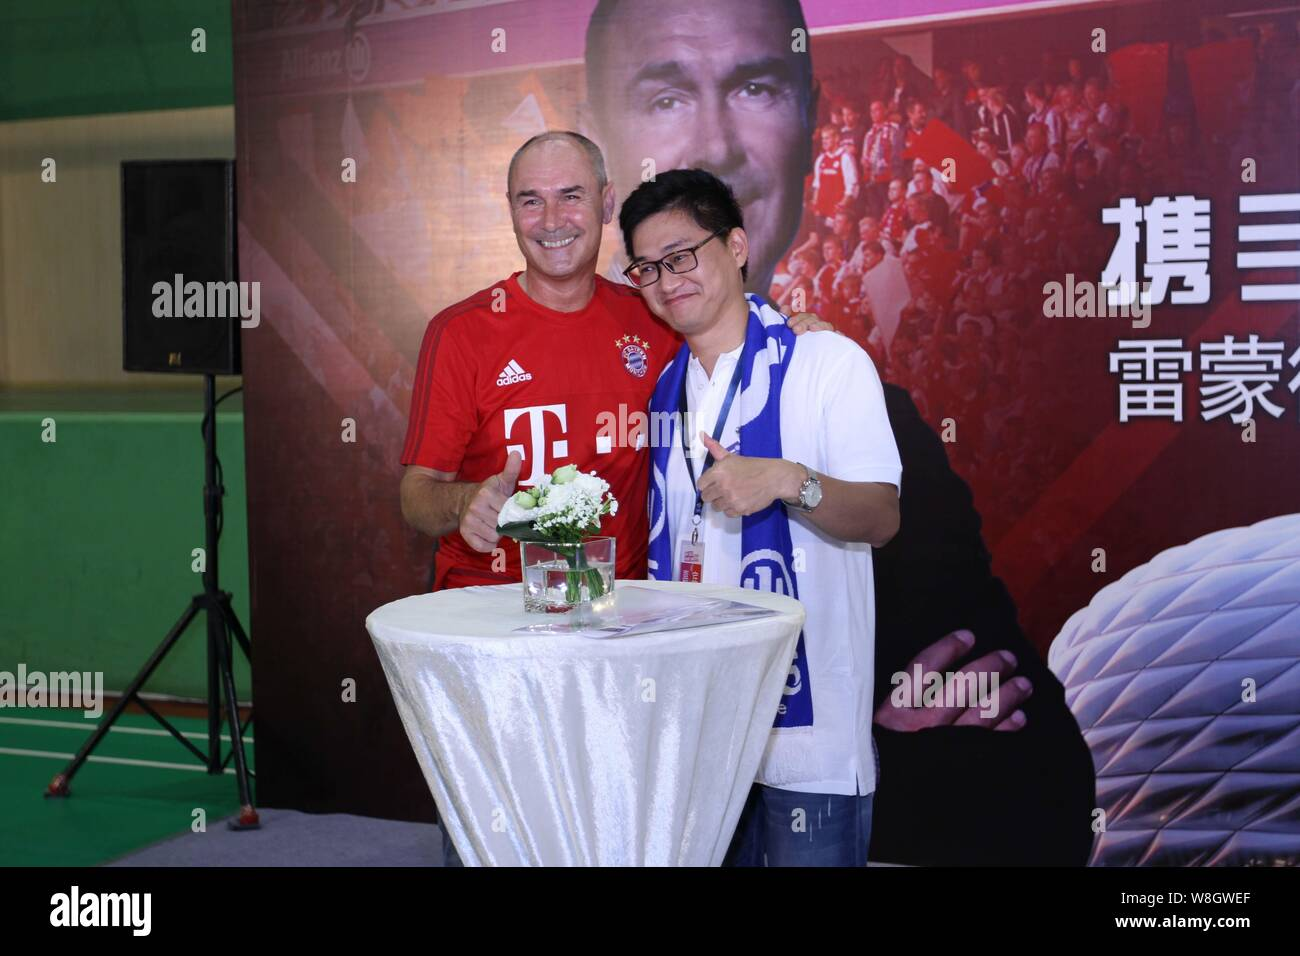 Former German soccer star Raimond Aumann, left, poses with a Chinese fan during a fan meeting event in Guangzhou city, south China's Guangdong provinc Stock Photo